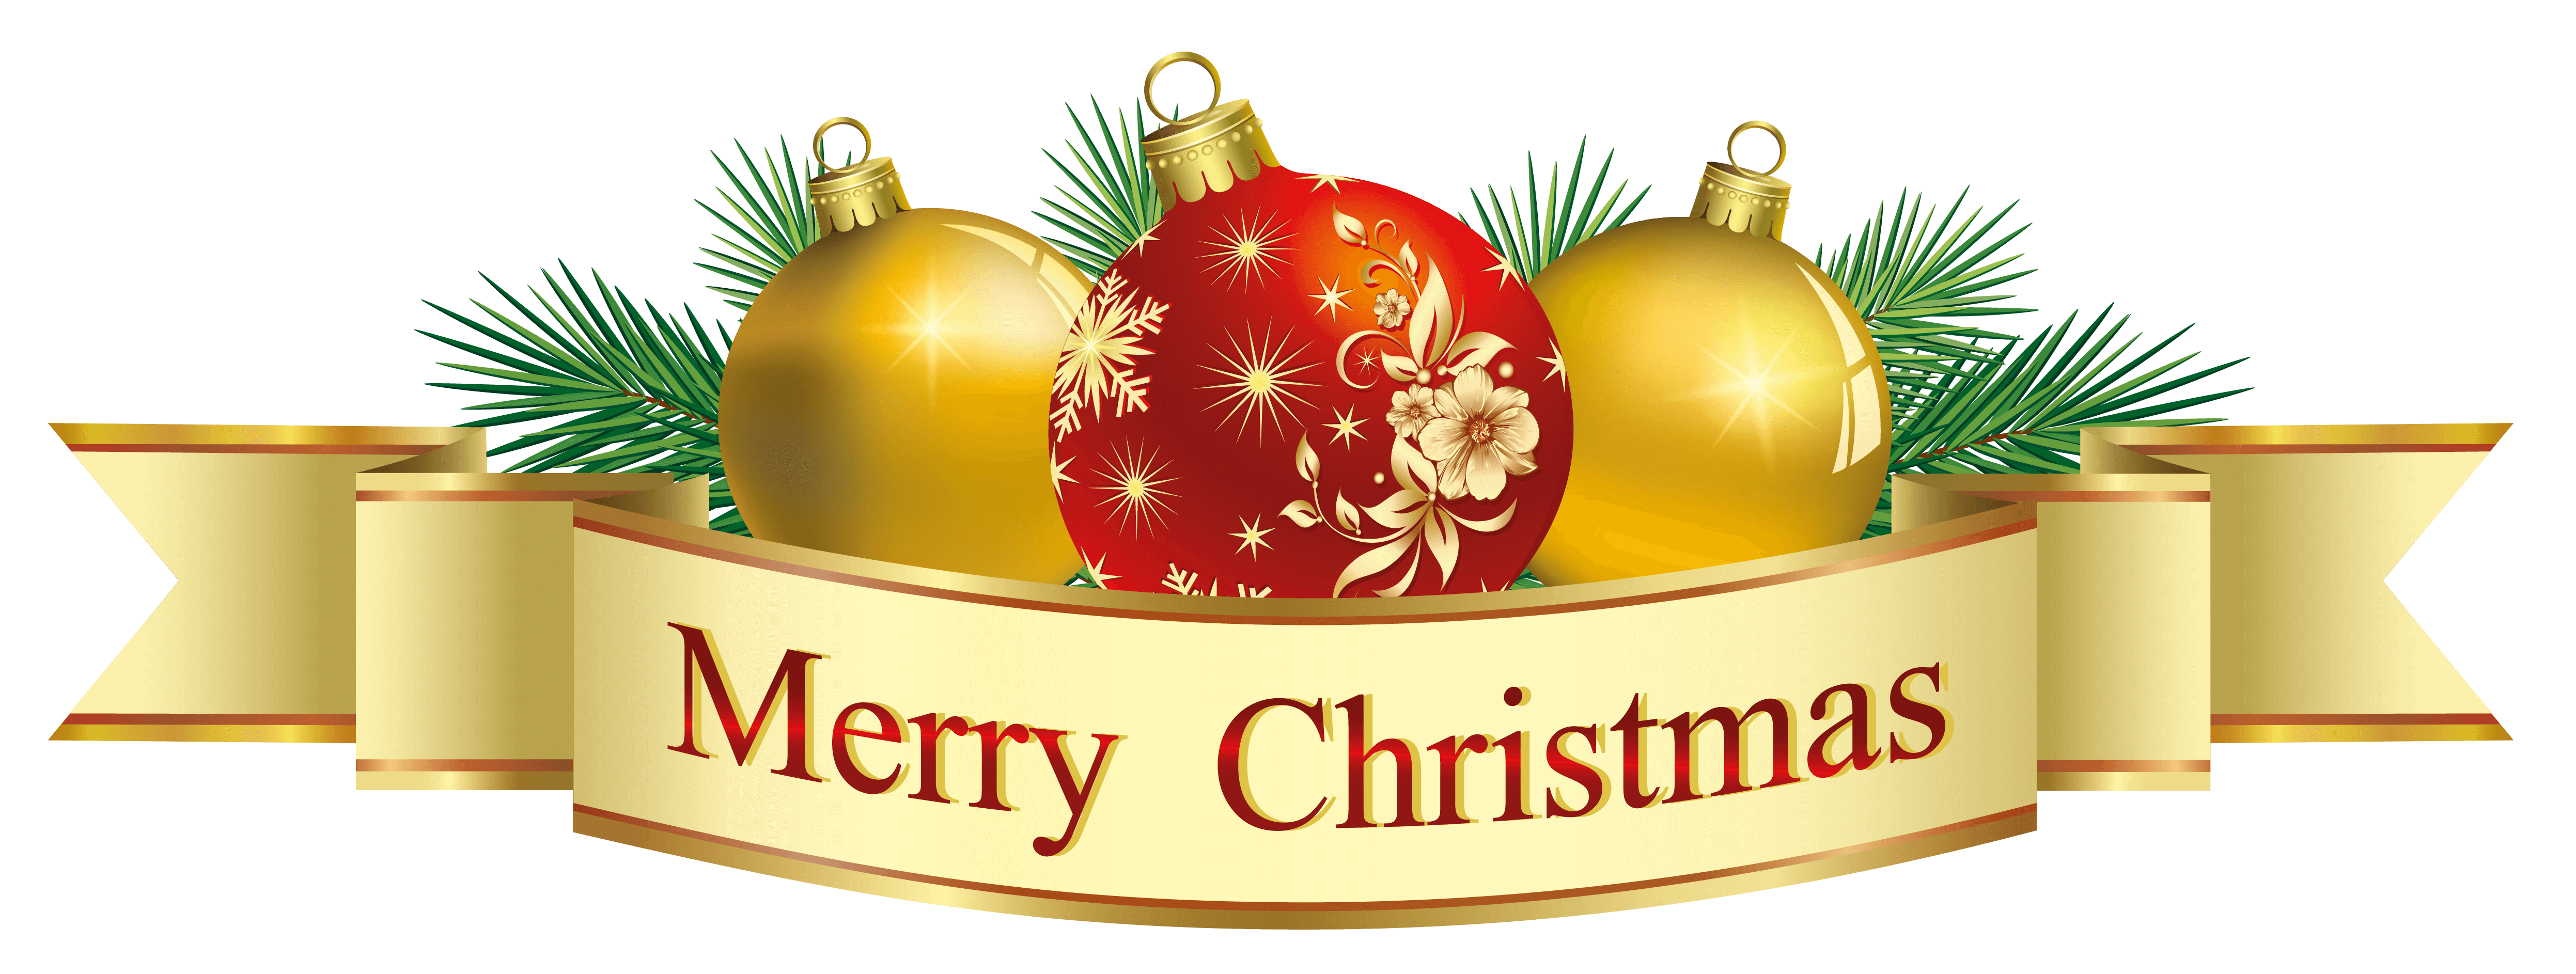 Merry Christmas and Happy New Year!! | Human Resources News | SESCO Management Consultants